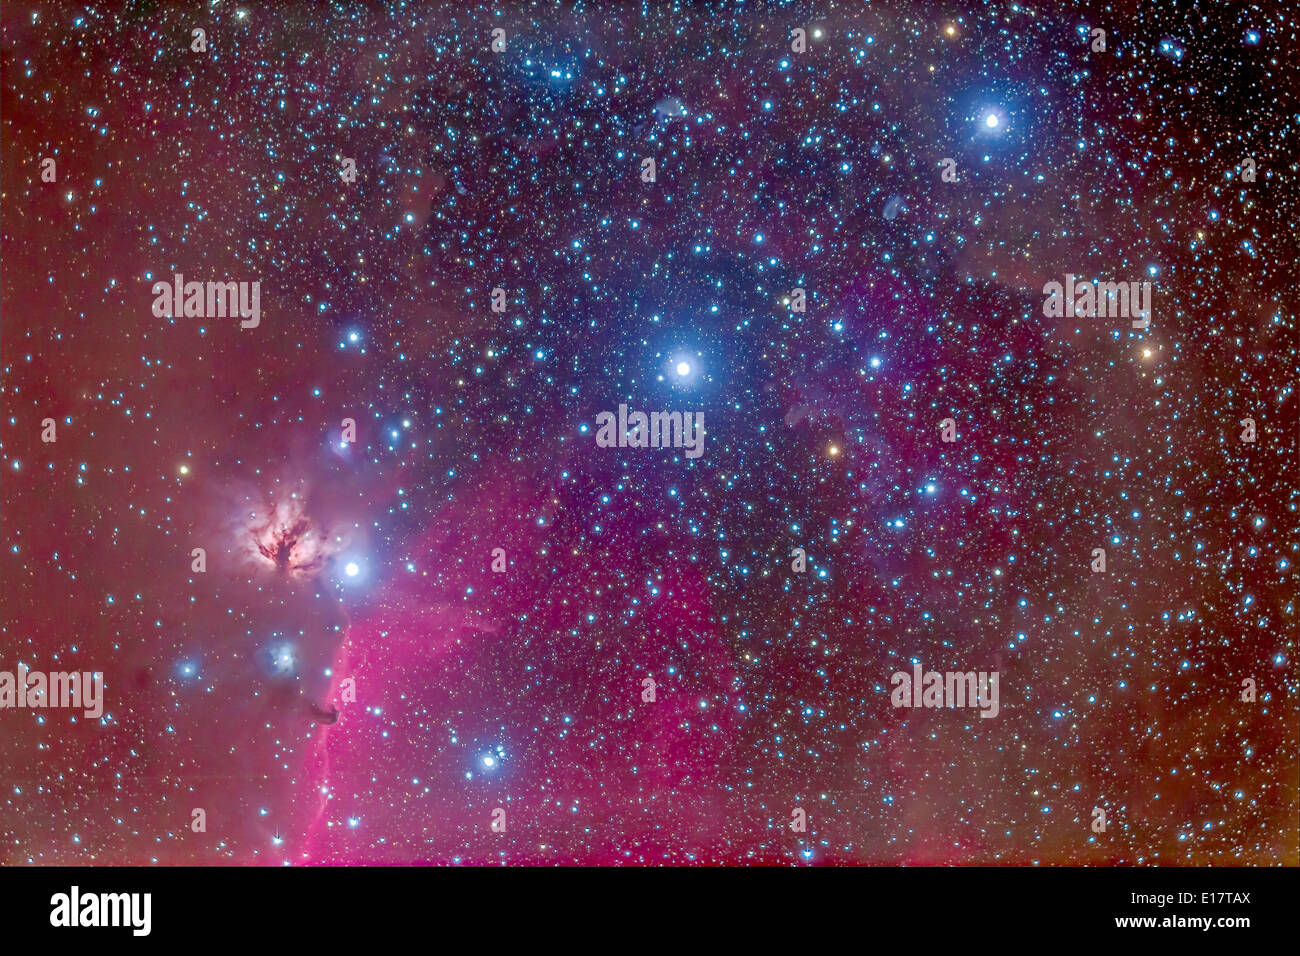 The Belt of Orion, enmeshed in nebulosity, emission and reflection, including the famous Horsehead Nebula - Stock Image